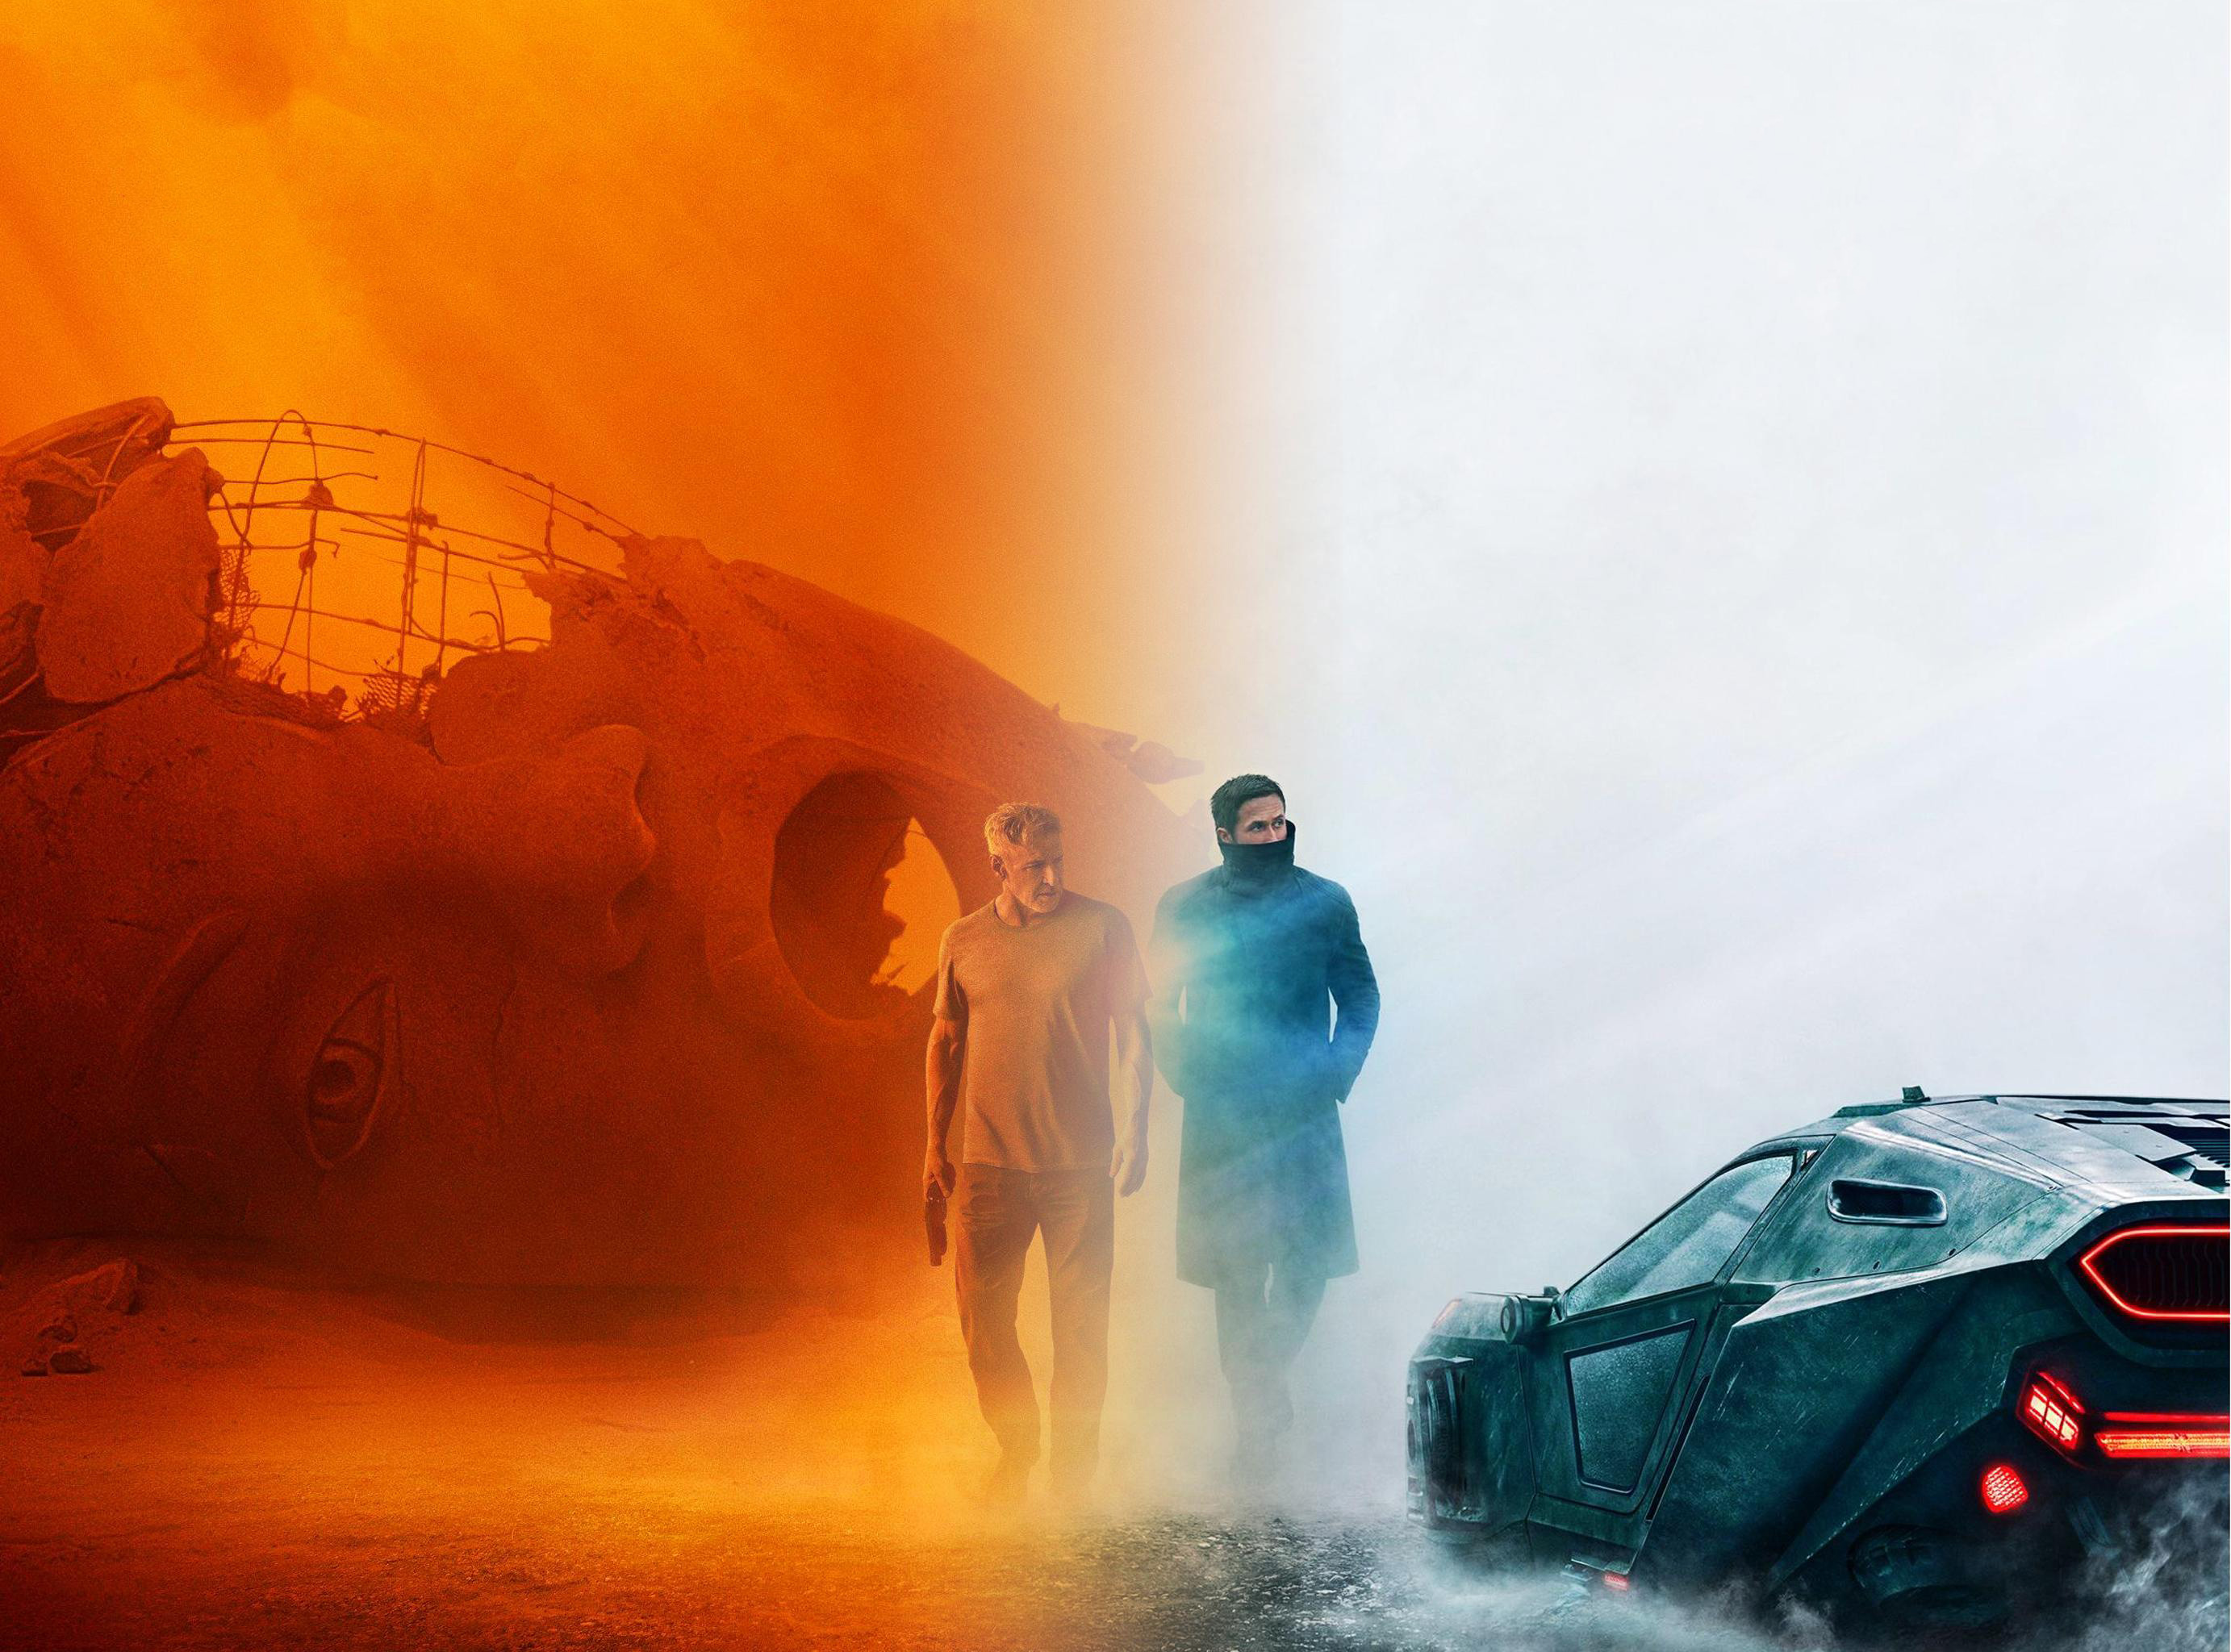 Blade Runner 2049 Movie, HD Movies, 4k Wallpapers, Images